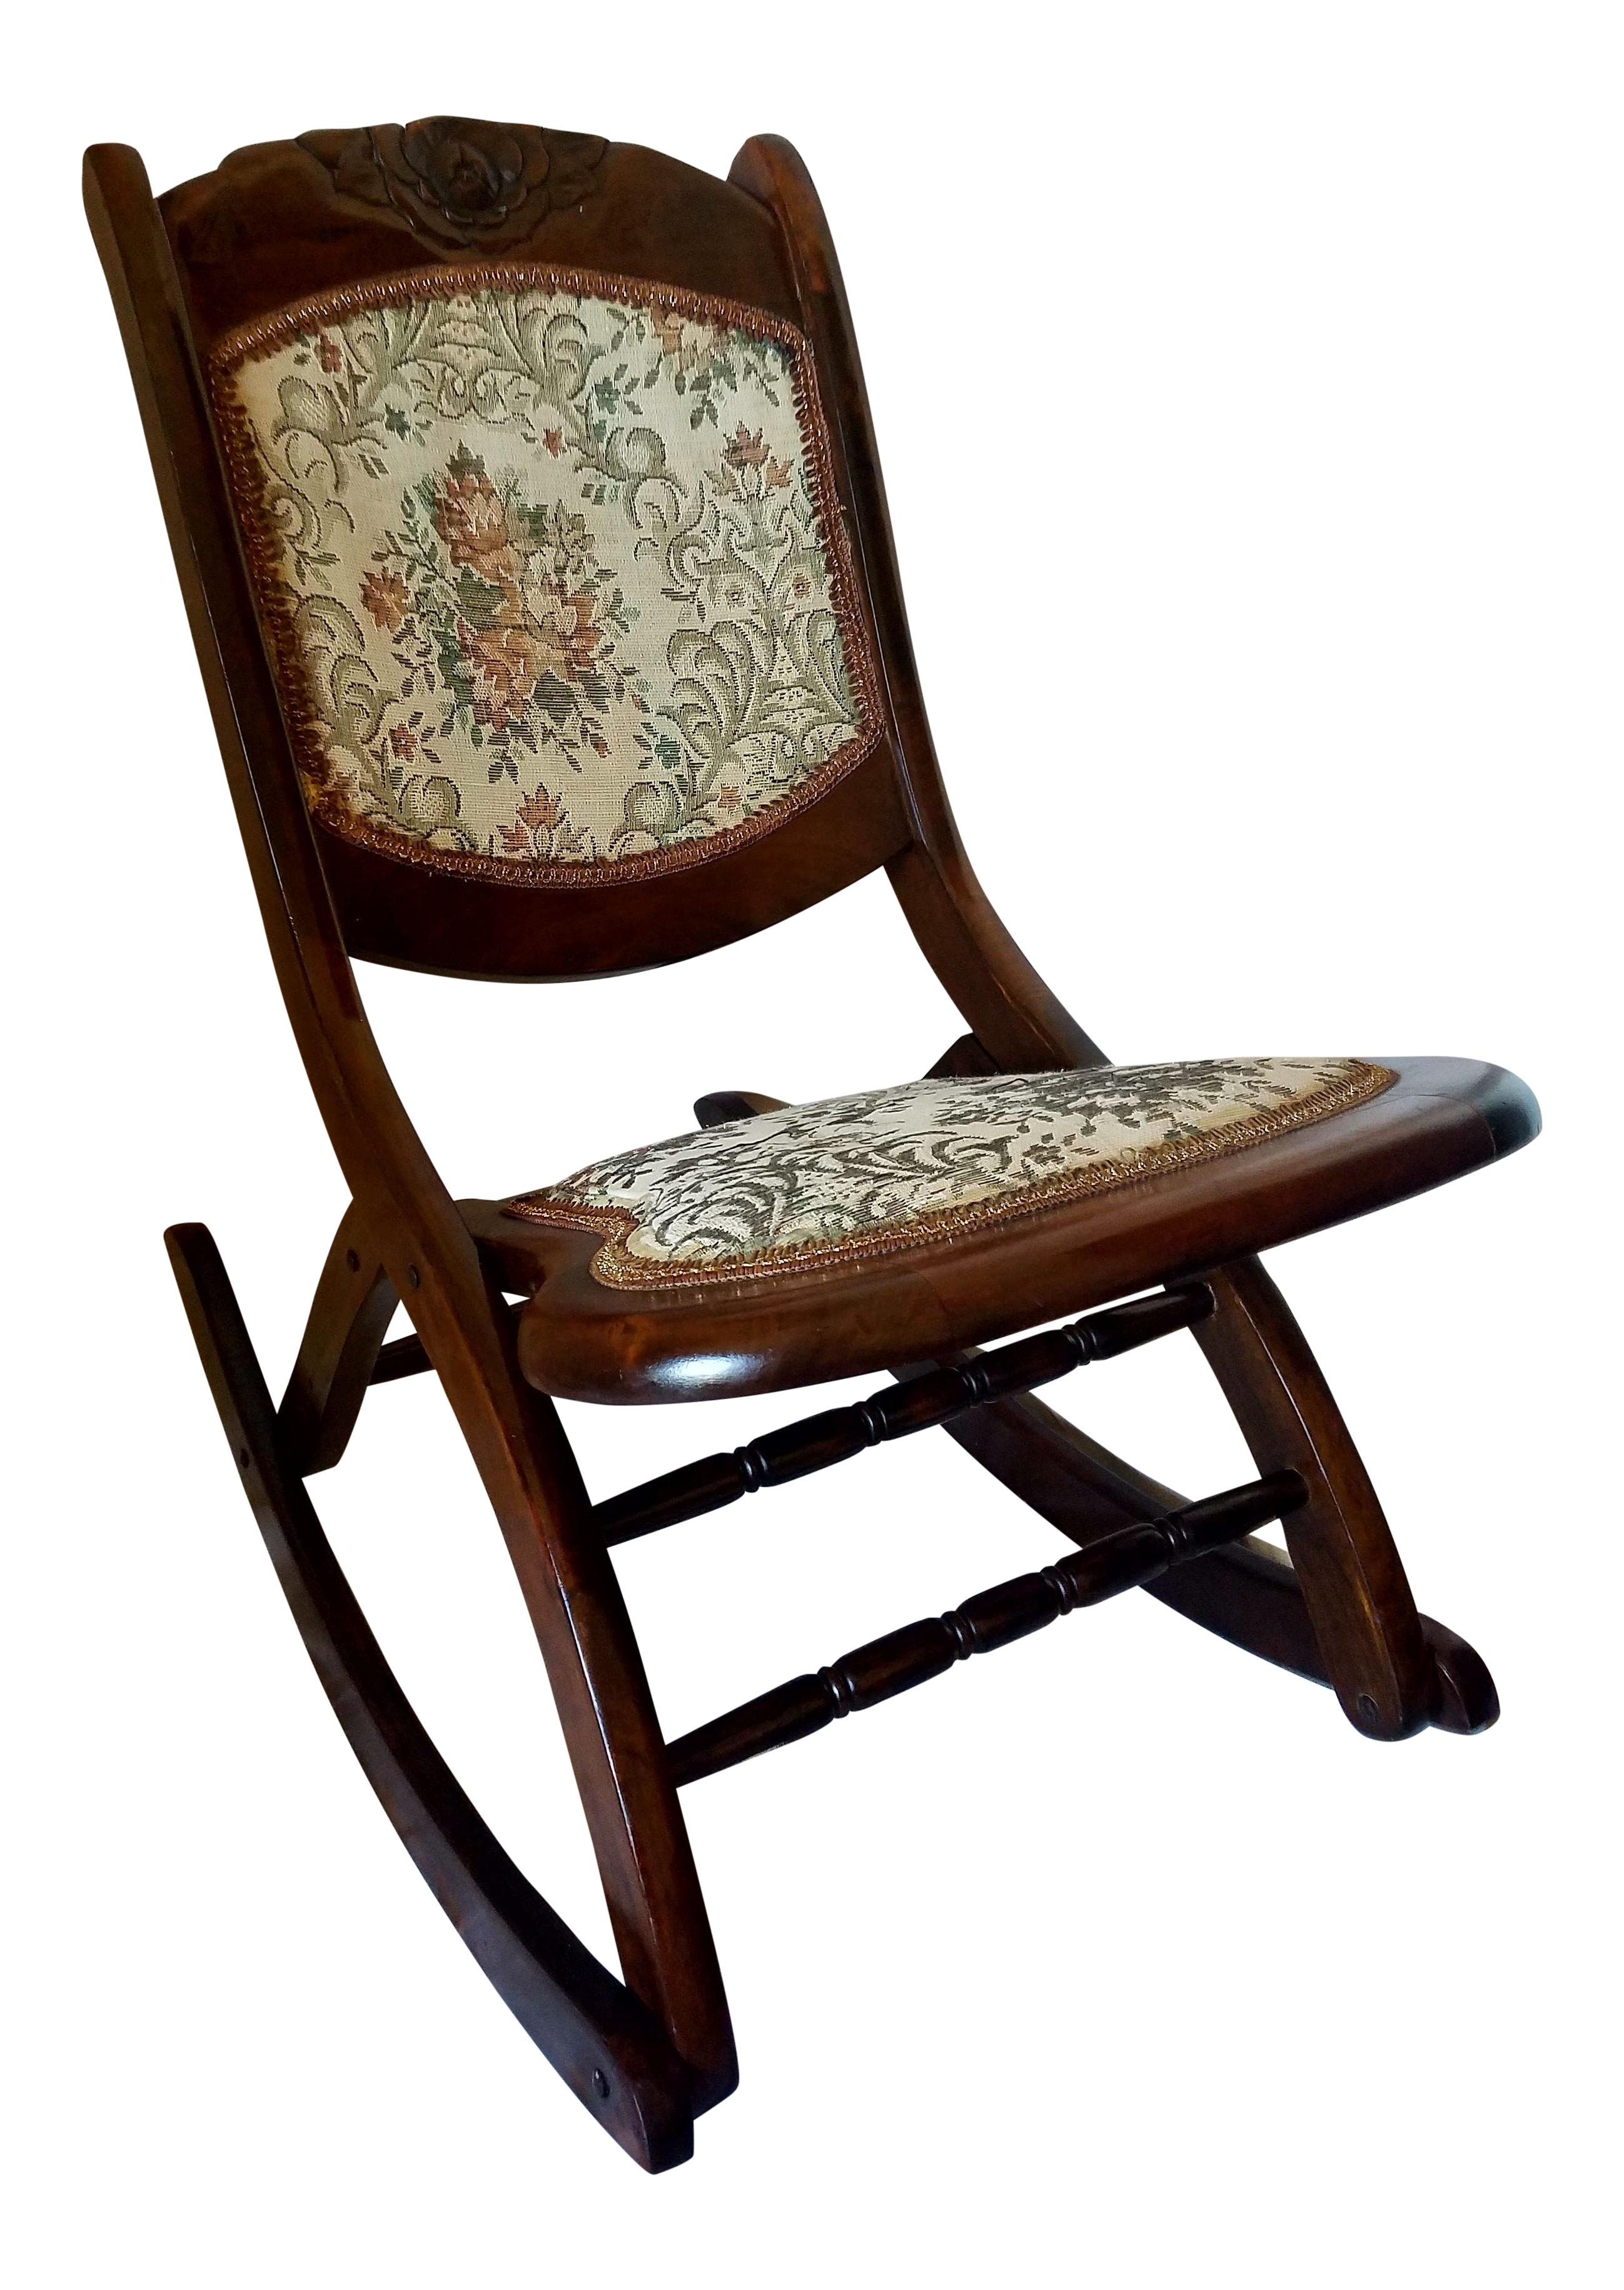 Antique Folding Rocking Chair Chairish Chairs With Lumbar Support Inside Most Up To Date Rocking Chairs With Lumbar Support (View 11 of 15)